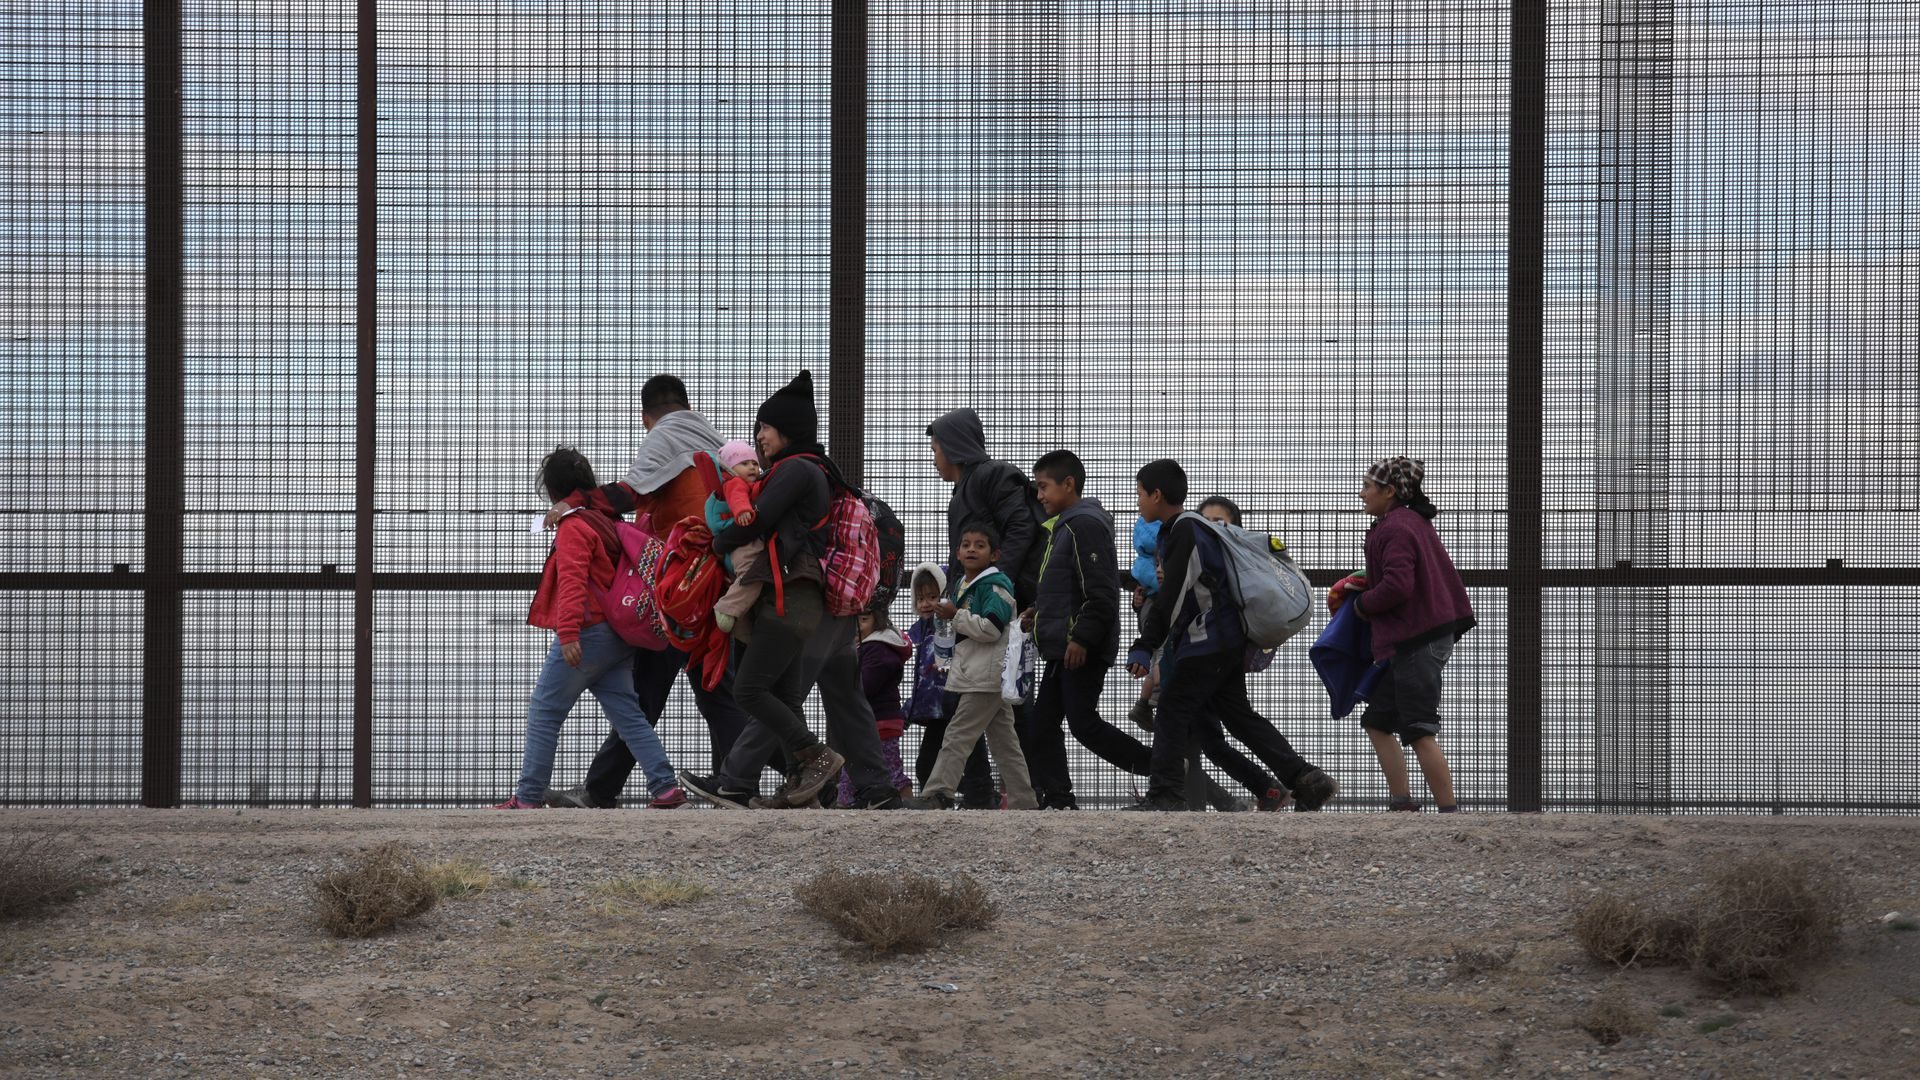 Migrants at the border fence.